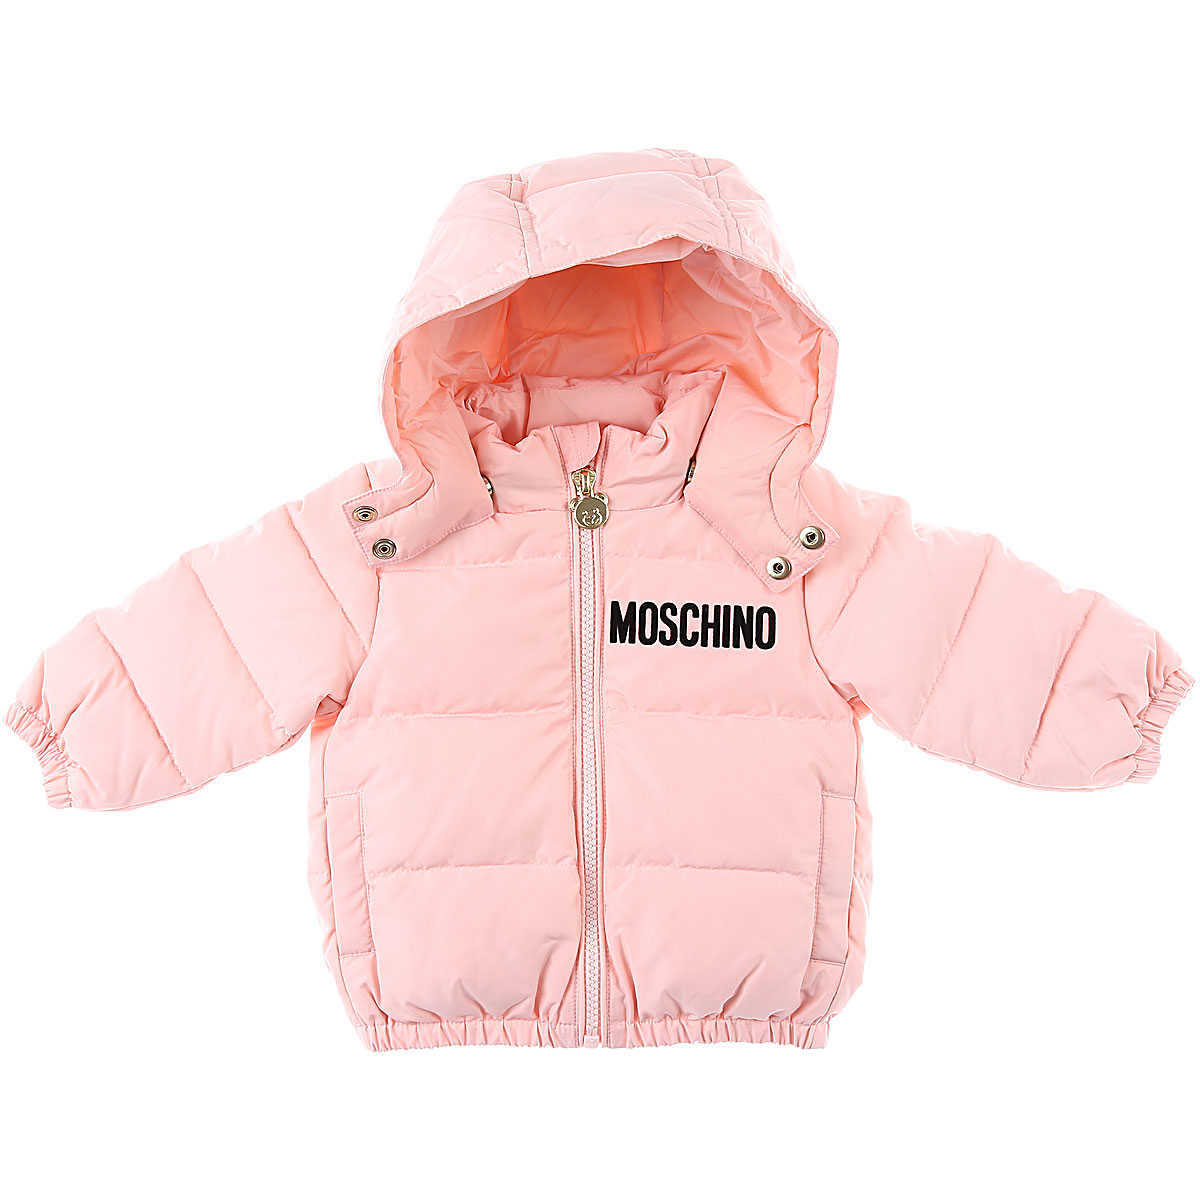 Moschino Baby Down Jacket for Girls Pink - GOOFASH - Womens JACKETS